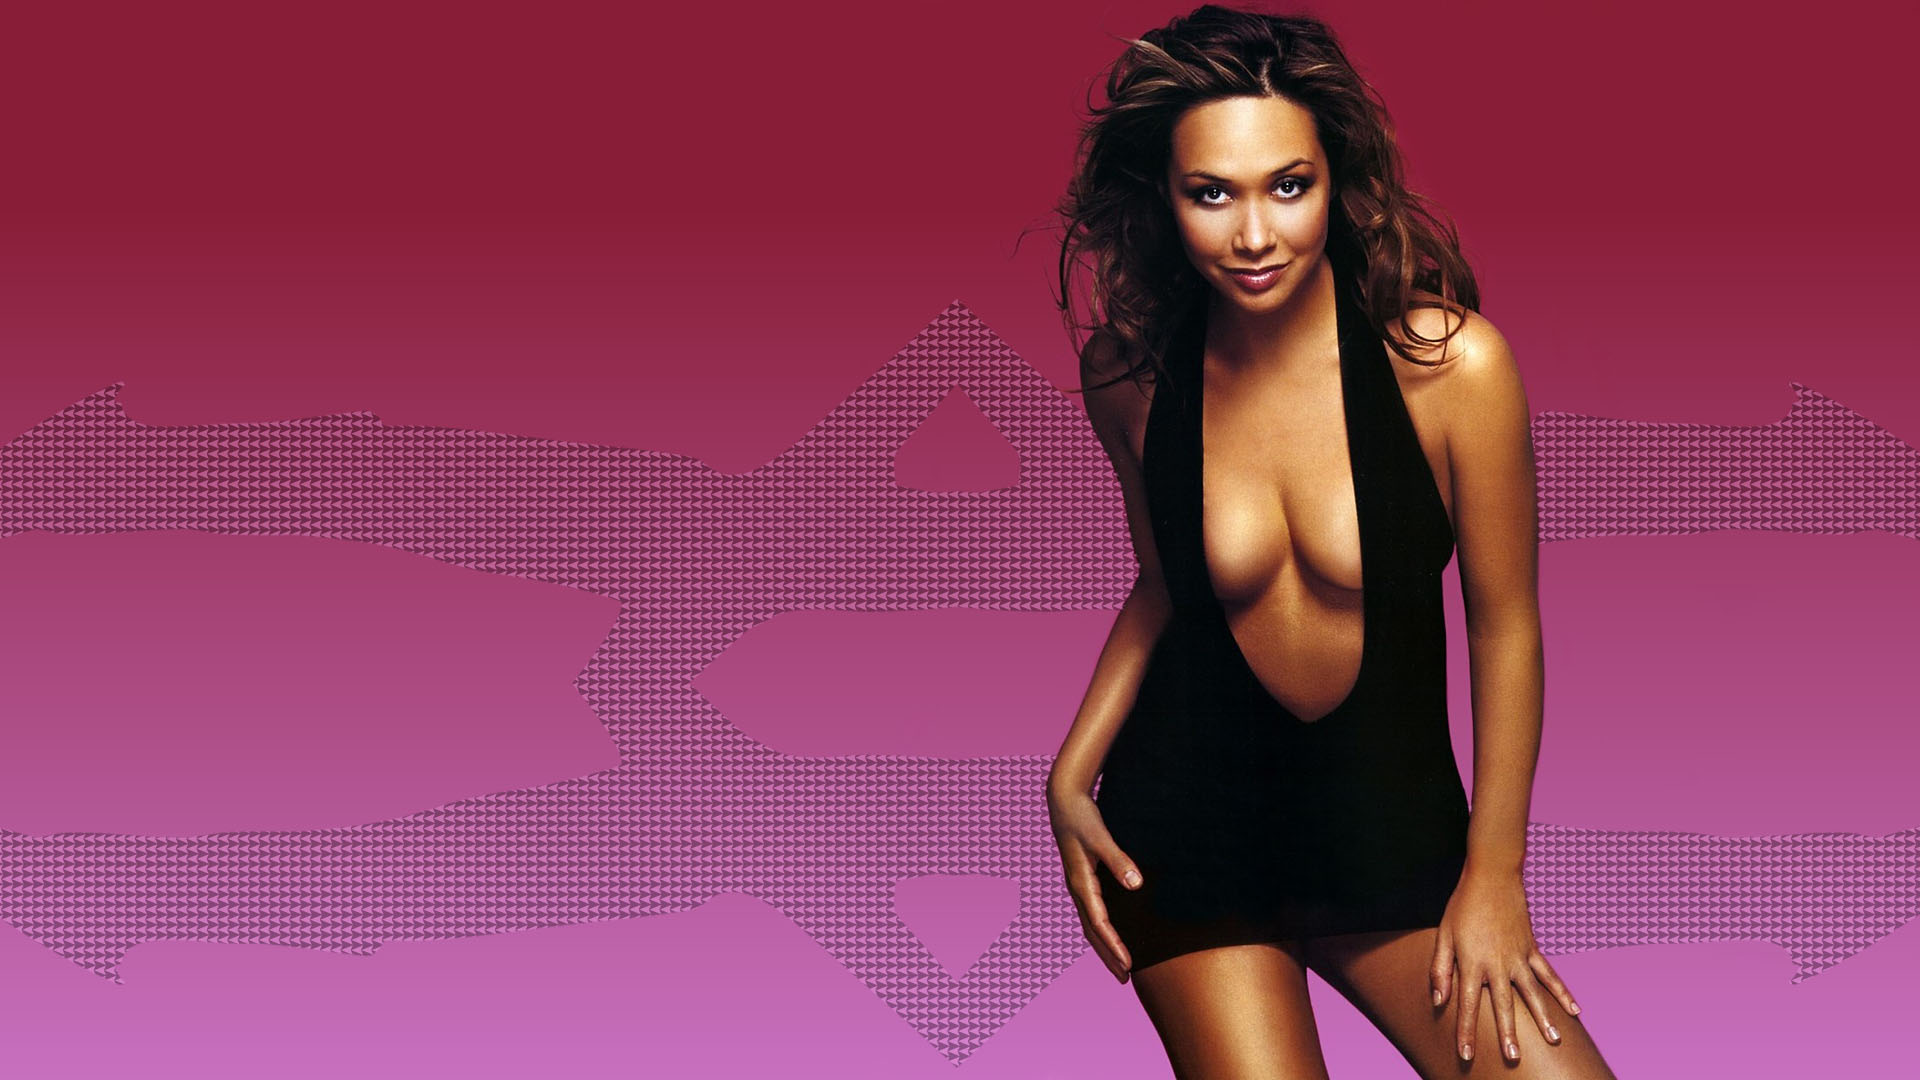 woman black people Myleene HD Wallpaper